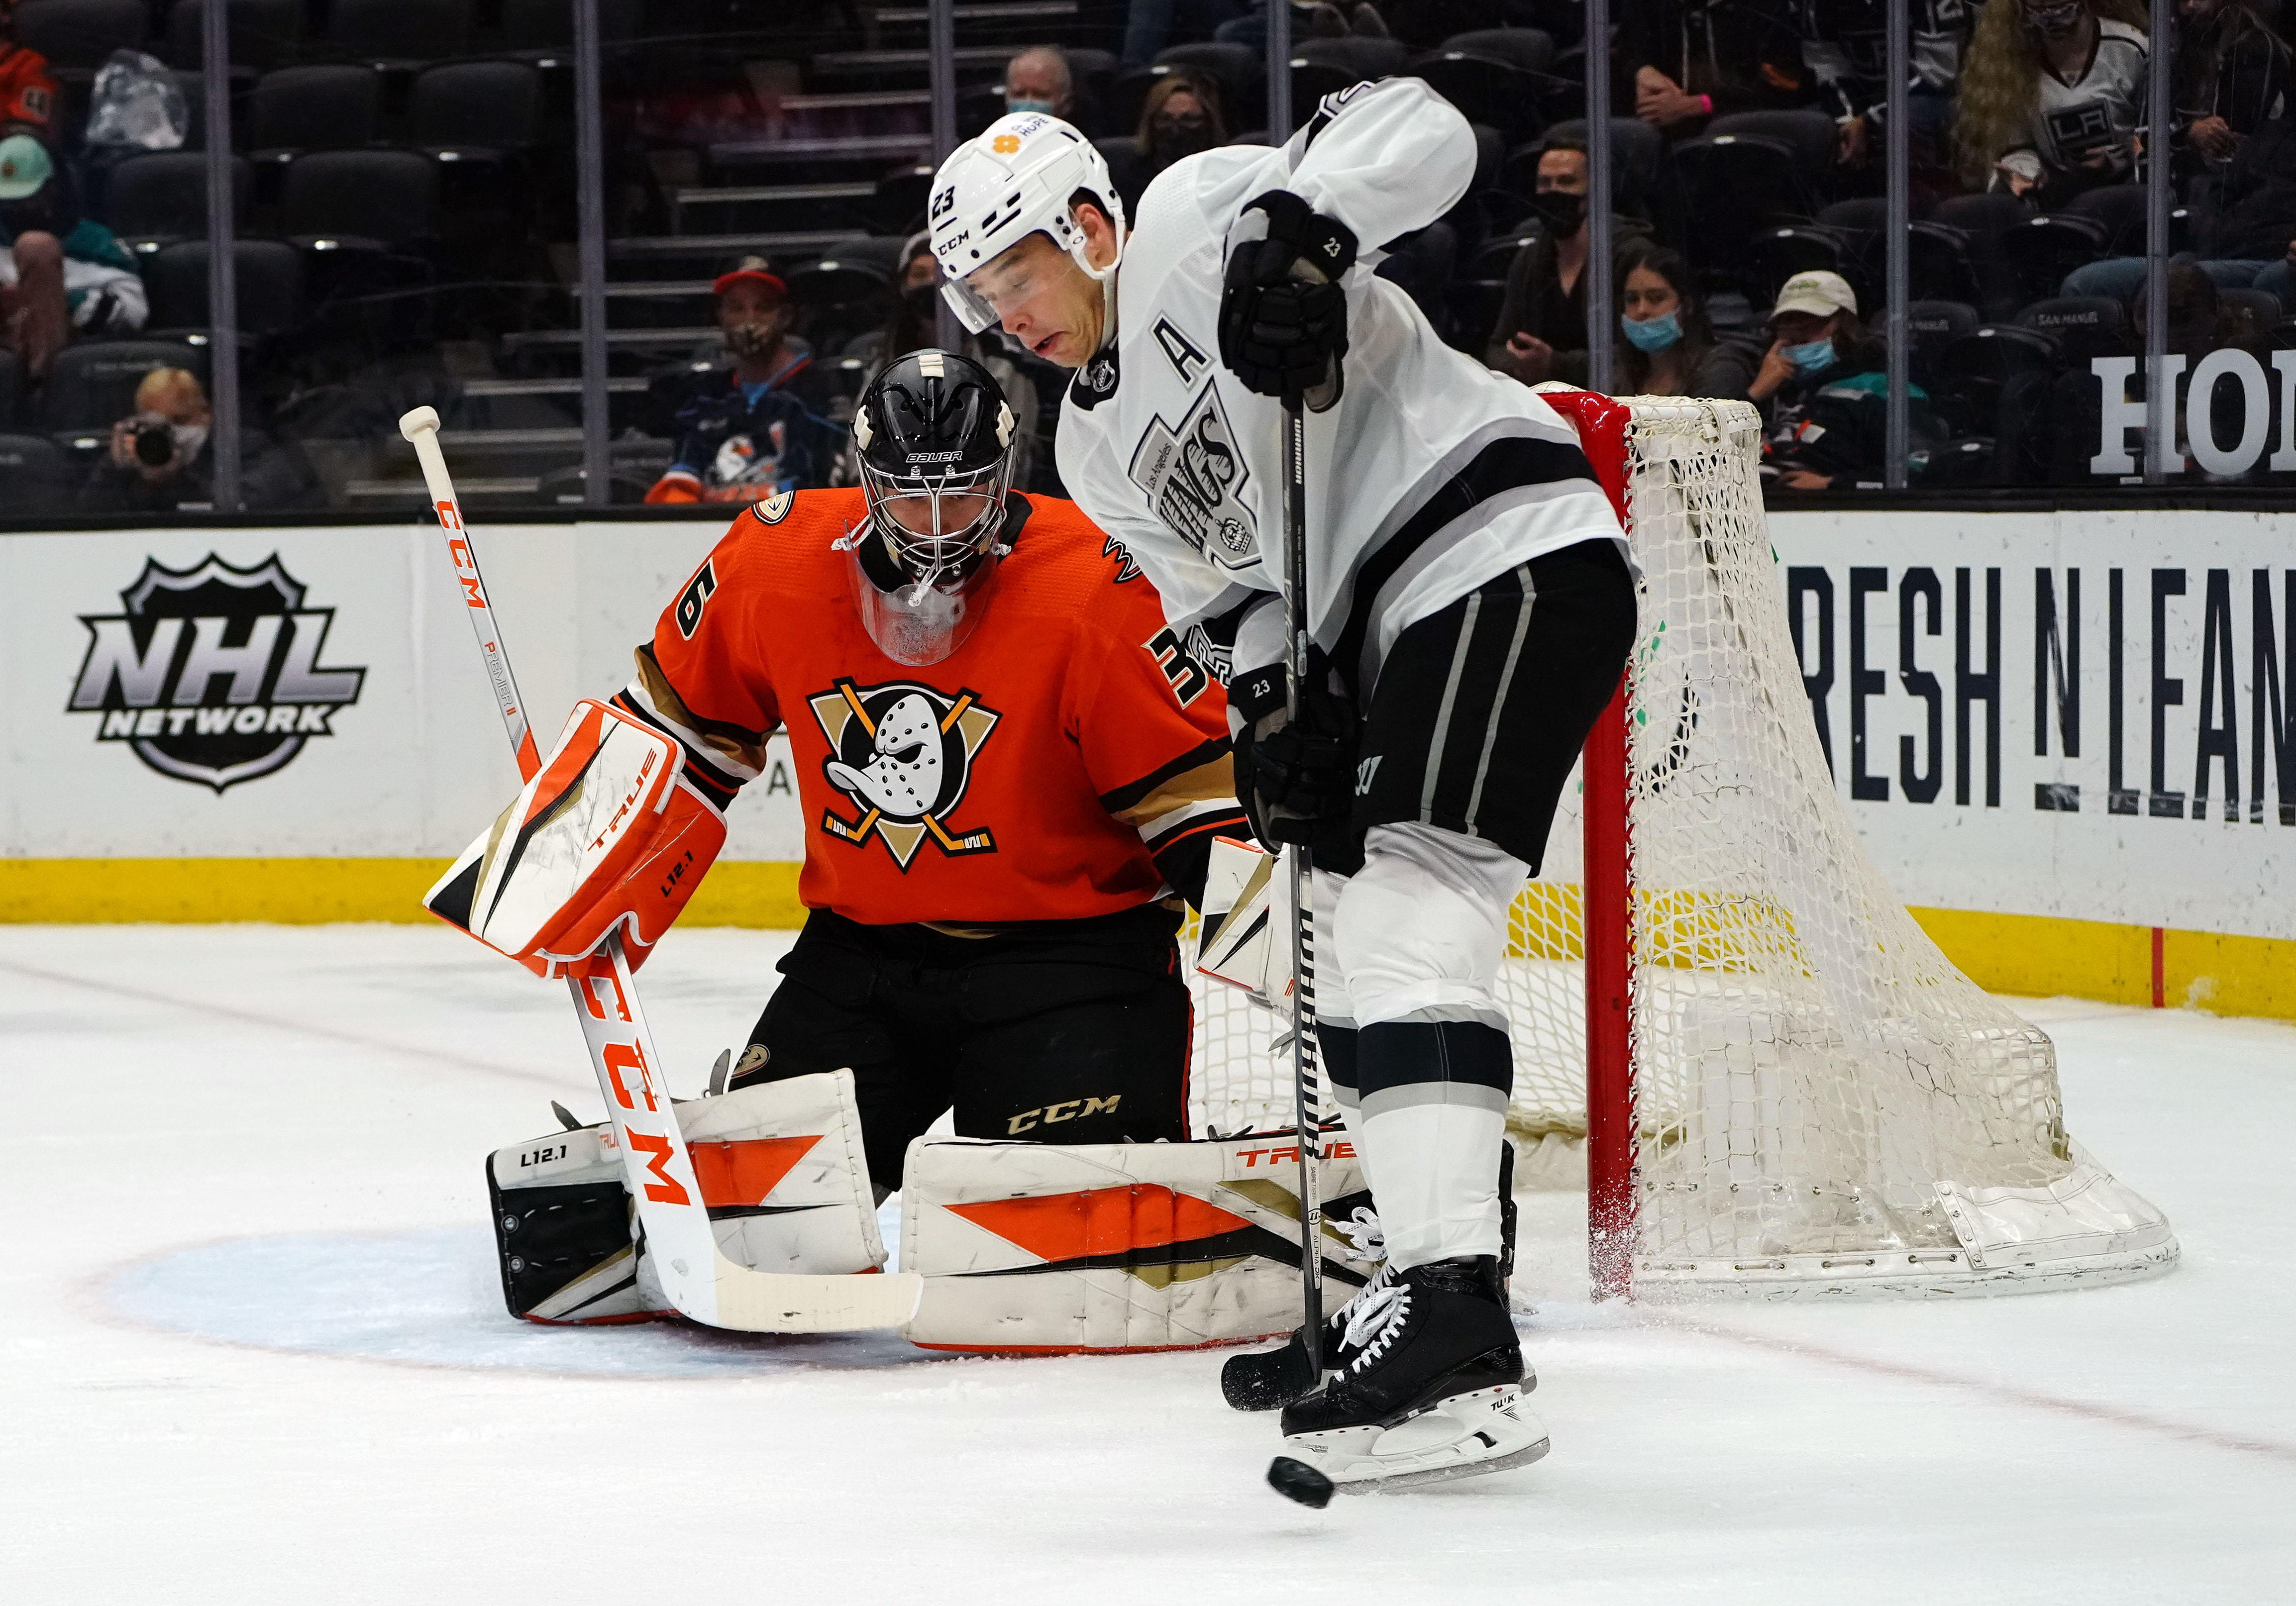 Los Angeles Kings right wing Dustin Brown (23) controls the puck in front of Anaheim Ducks goaltender John Gibson (36) during the third period at Honda Center.